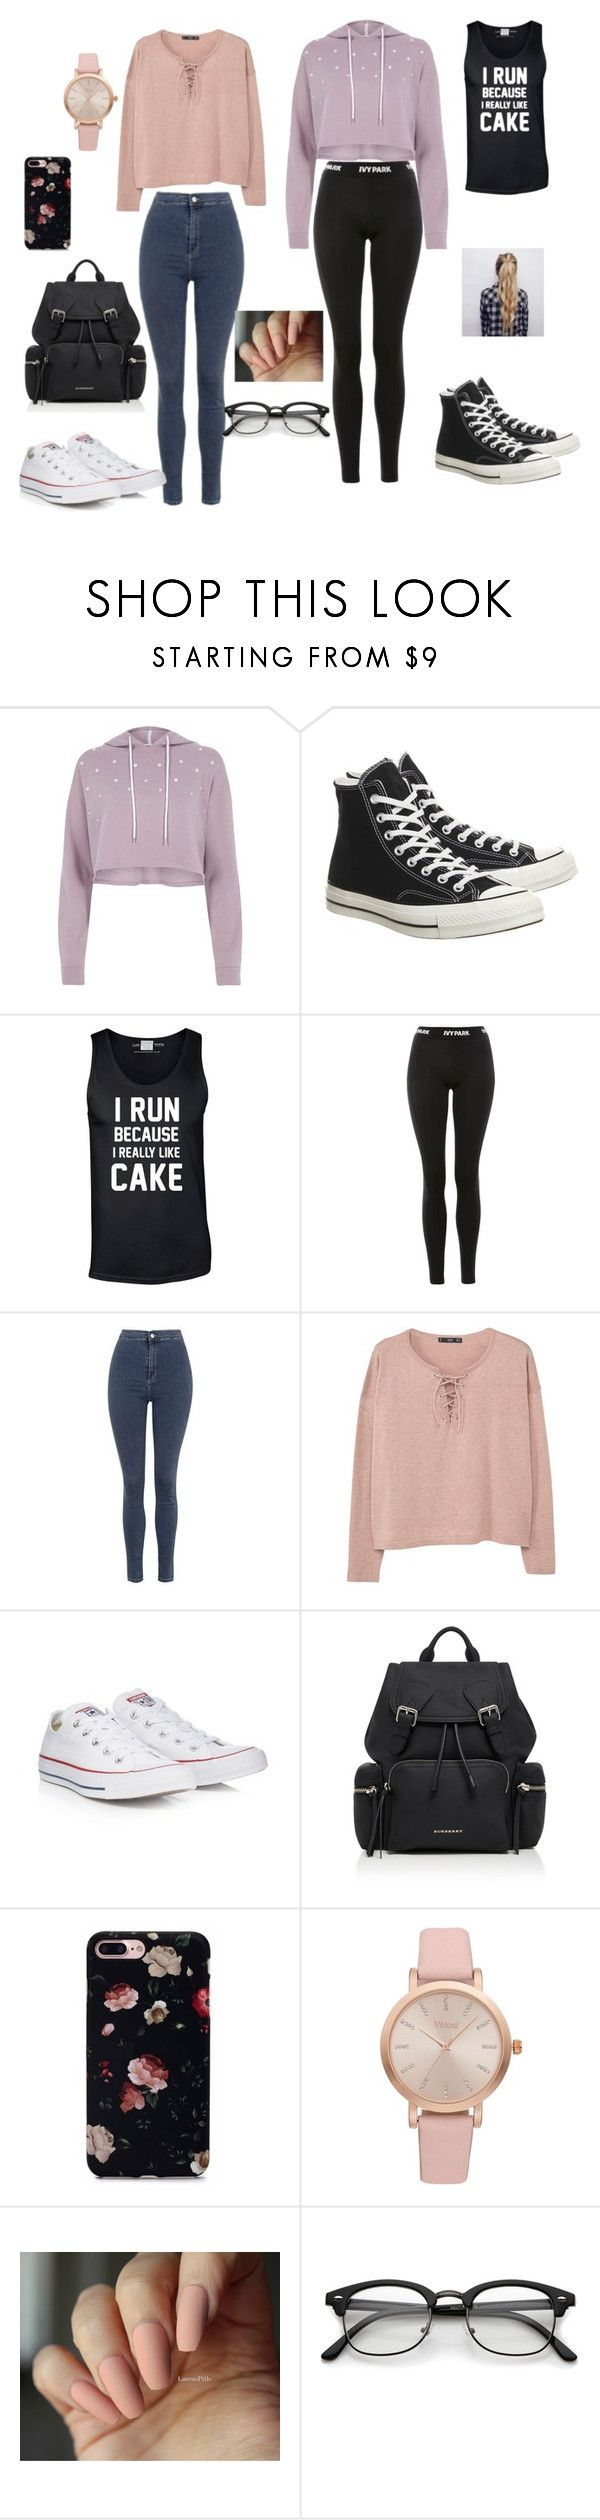 """""""TWO OUTFIT"""" by reka15 on Polyvore featuring River Island, Converse, Ivy Park, Topshop, MANGO, Burberry and Vivani"""